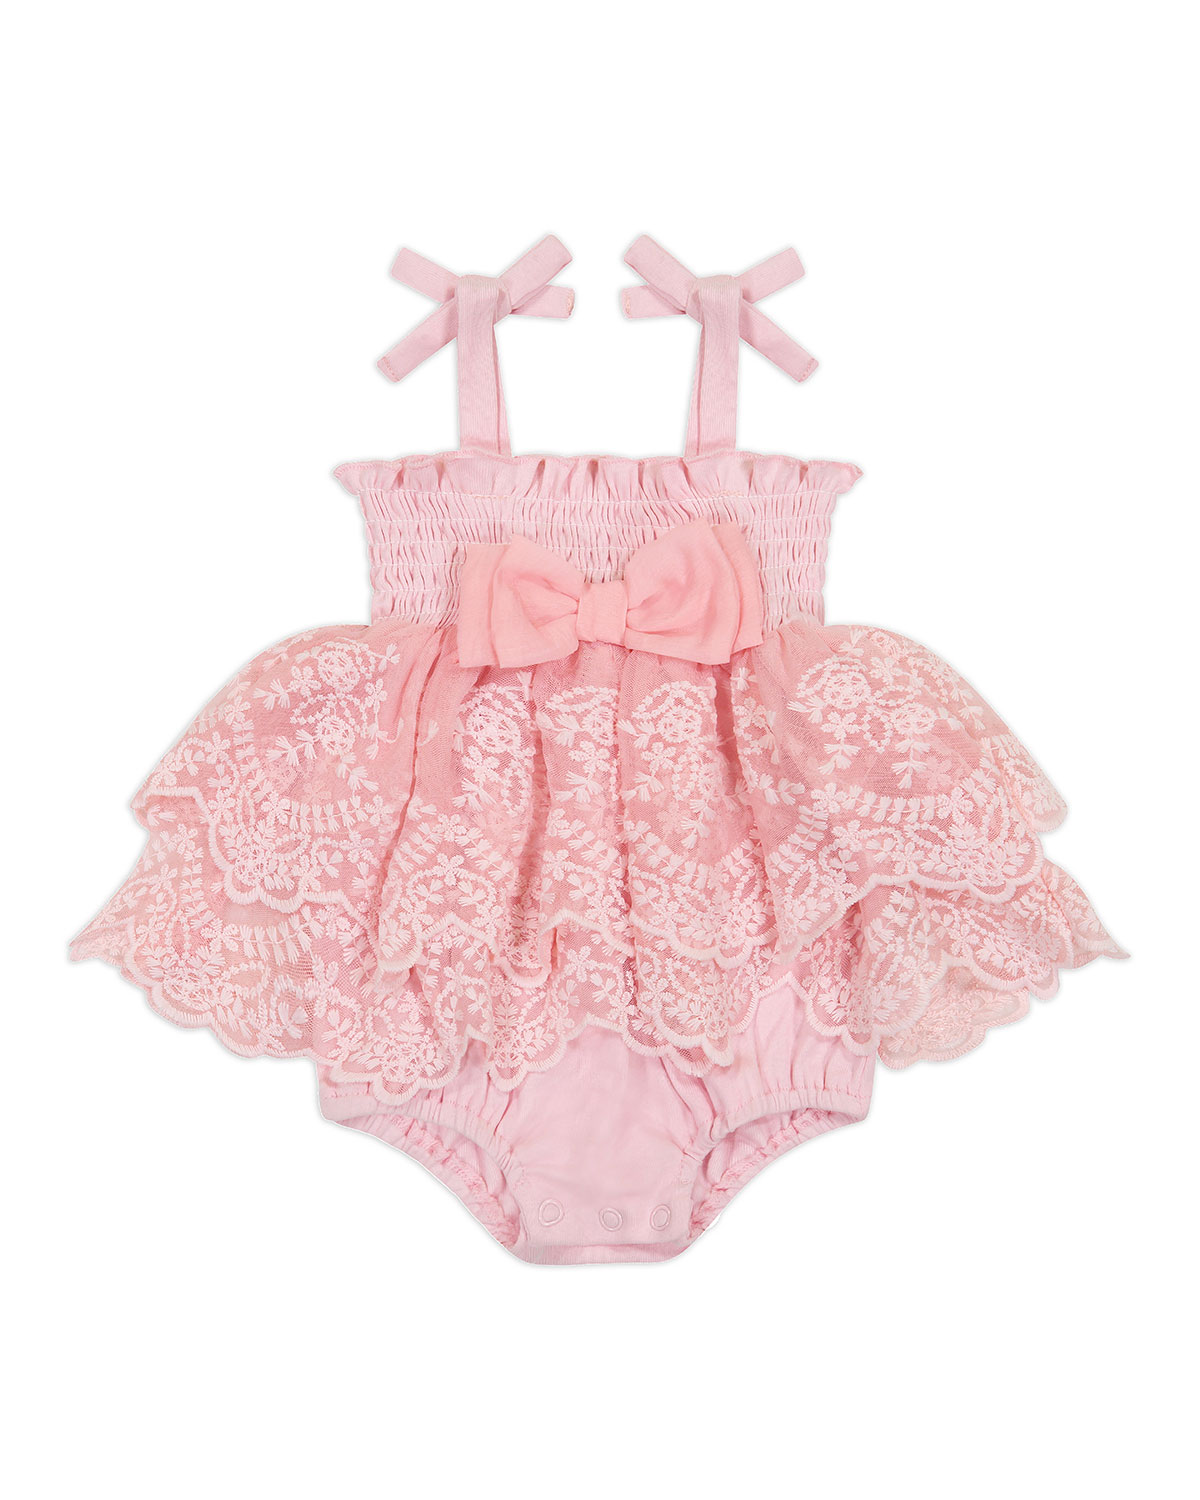 Girl's Tiered Embroidered Lace Smocked Romper, Size 3-9M